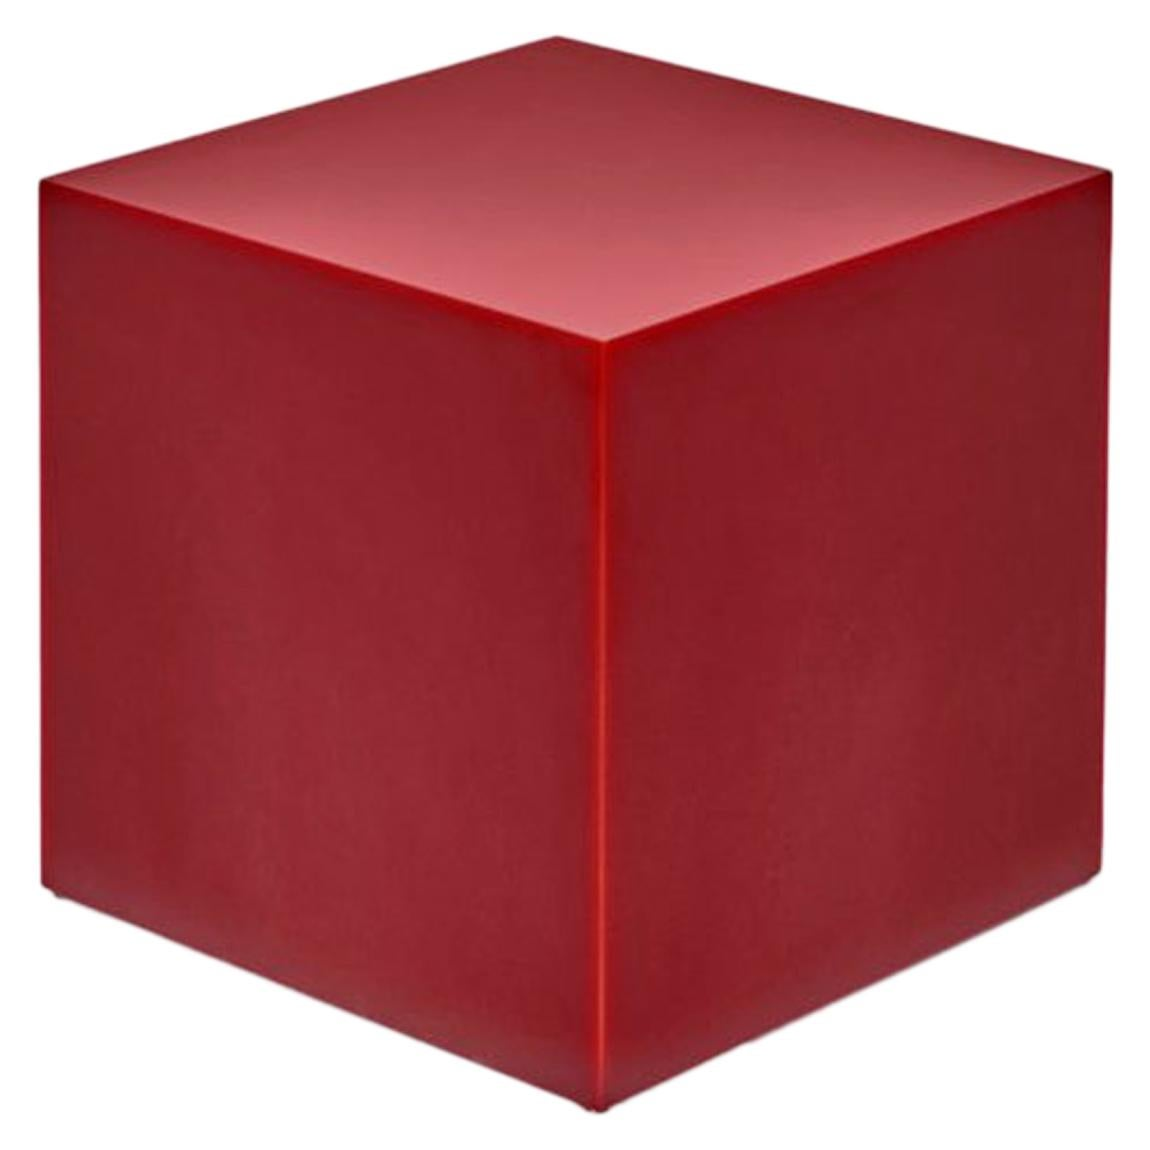 Sabine Marcelis Tomato Red Candy Cube Contemporary High Gloss Resin Side Table